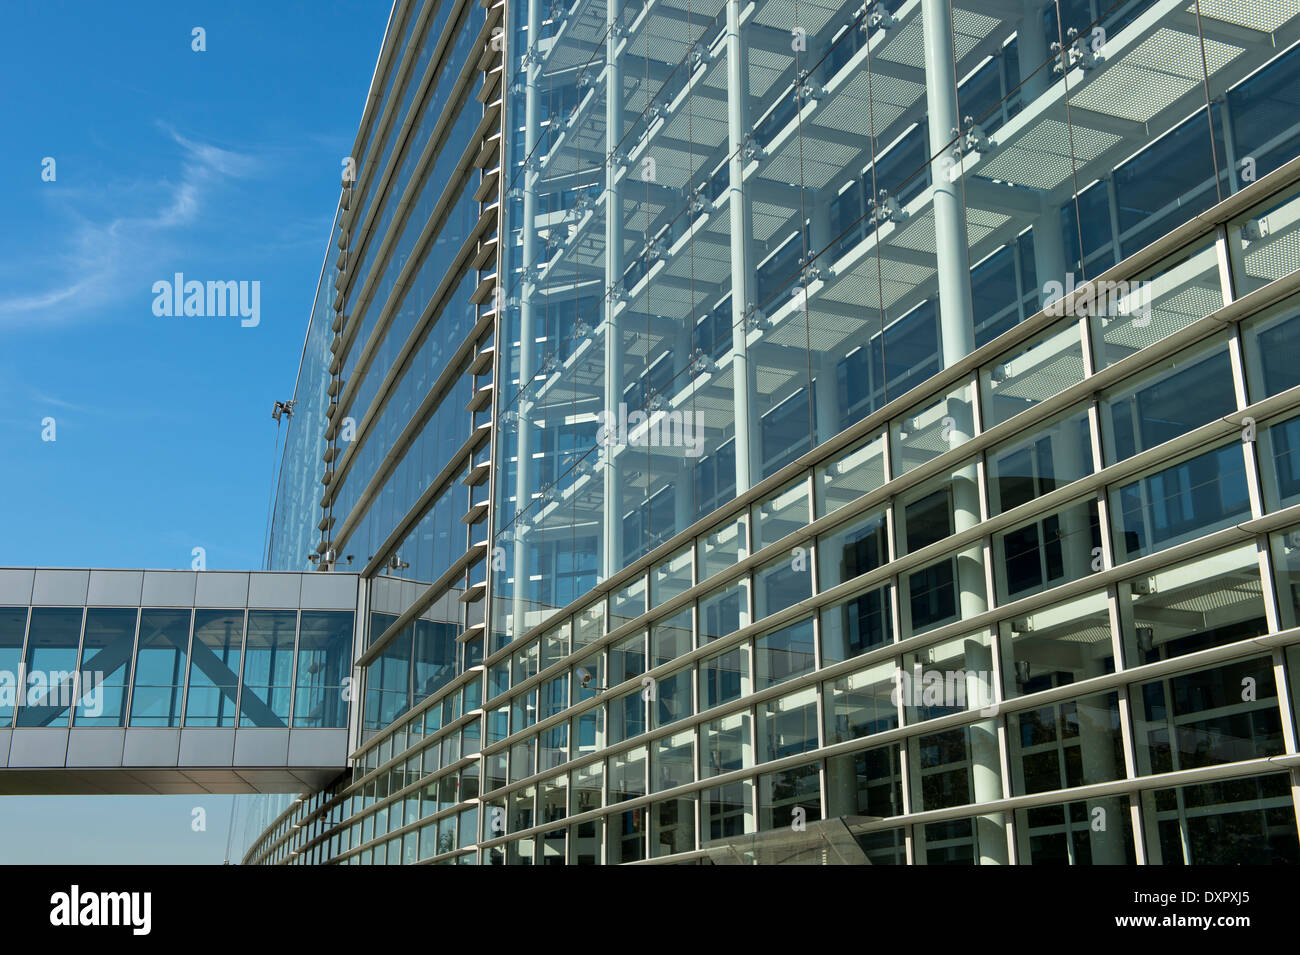 European Parliament building, Strasbourg, Alsace, France - Stock Image